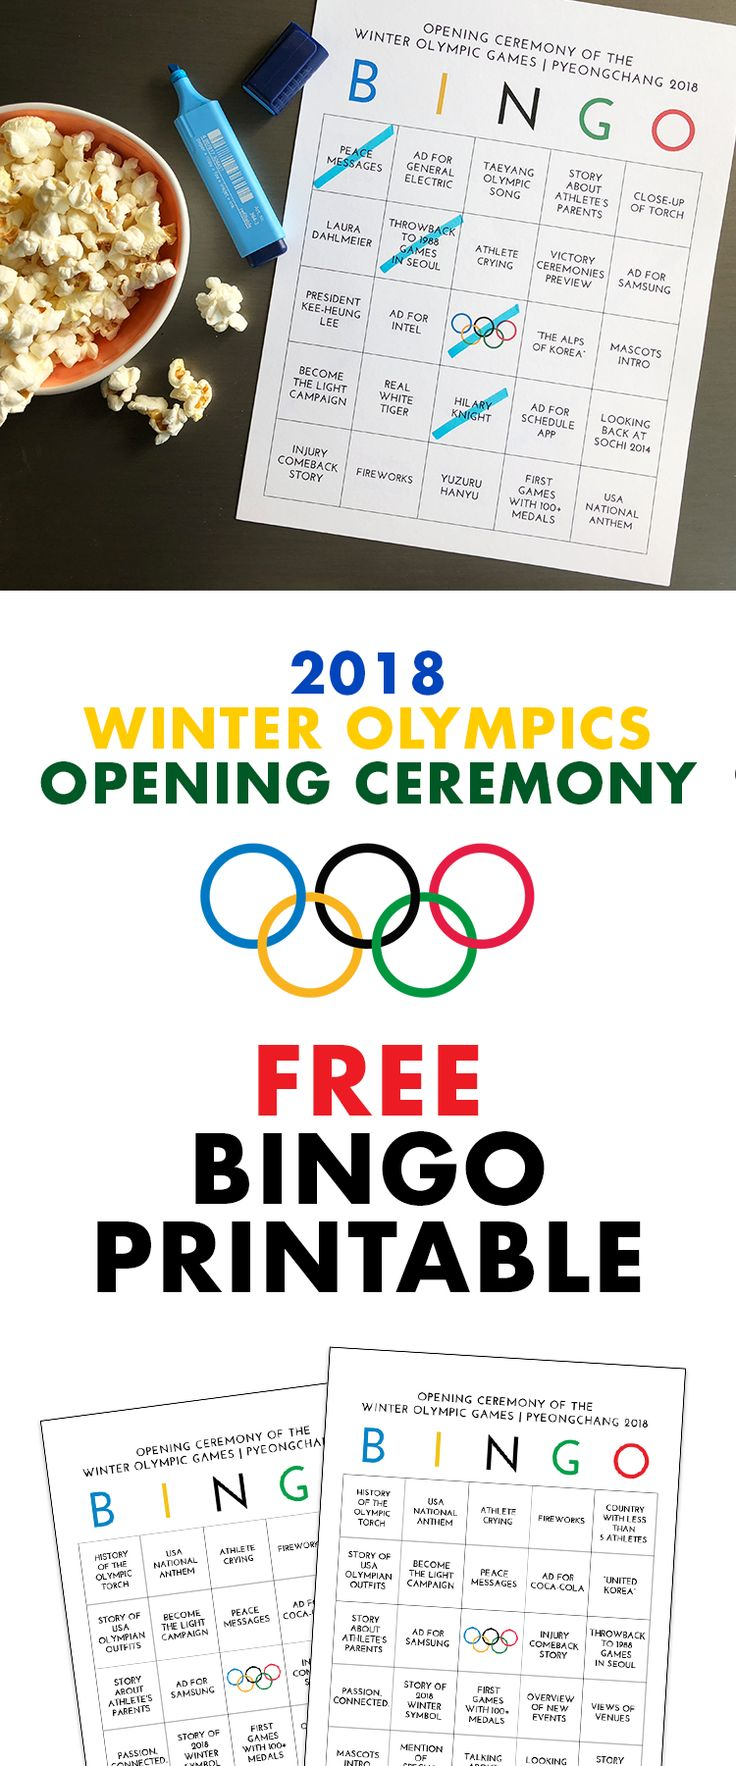 Free Bingo Printable for 2018 PyeongChang Winter Olympics Opening Ceremony | Olympics Activities for Kids | Olympics Opening Ceremony Party Ideas